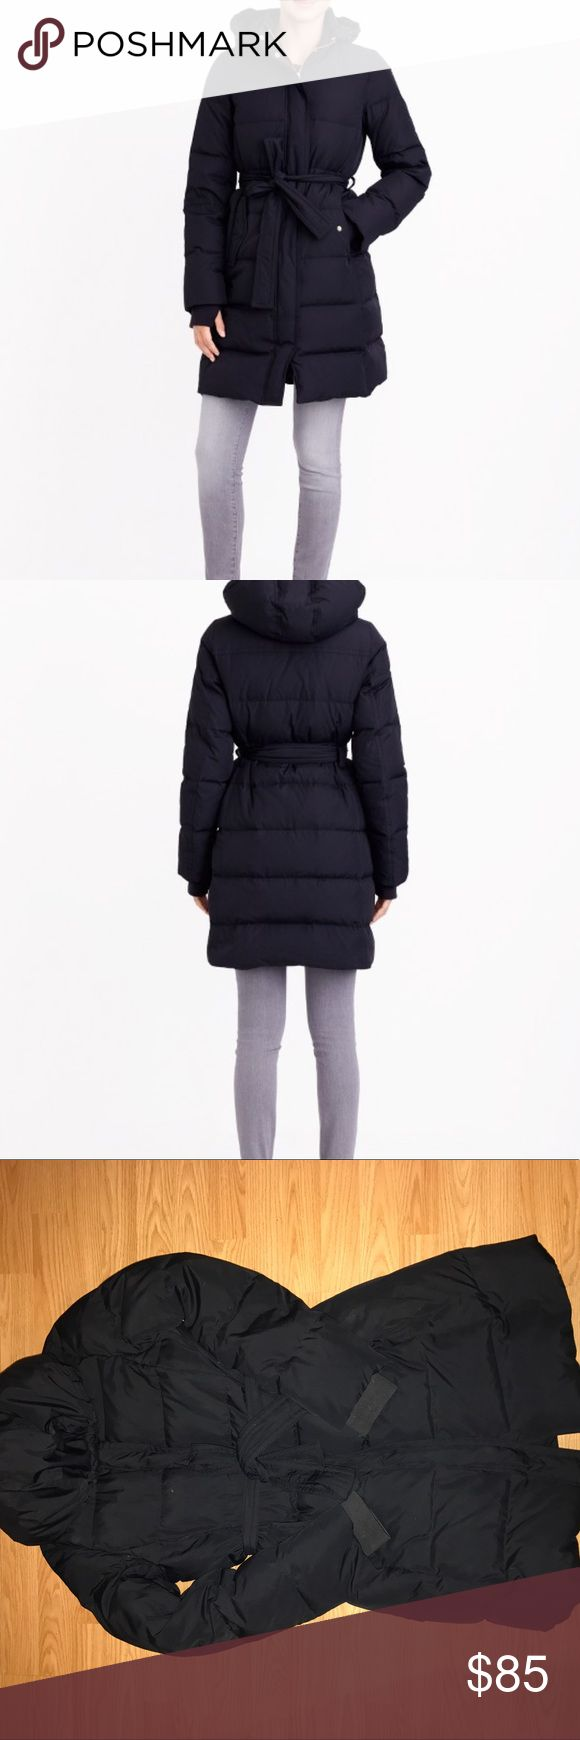 JCrew belted puffer jacket Good condition, super warm puffer jacket. Hits mid thigh, hood is removable with snaps. Belted J. Crew Jackets & Coats Puffers